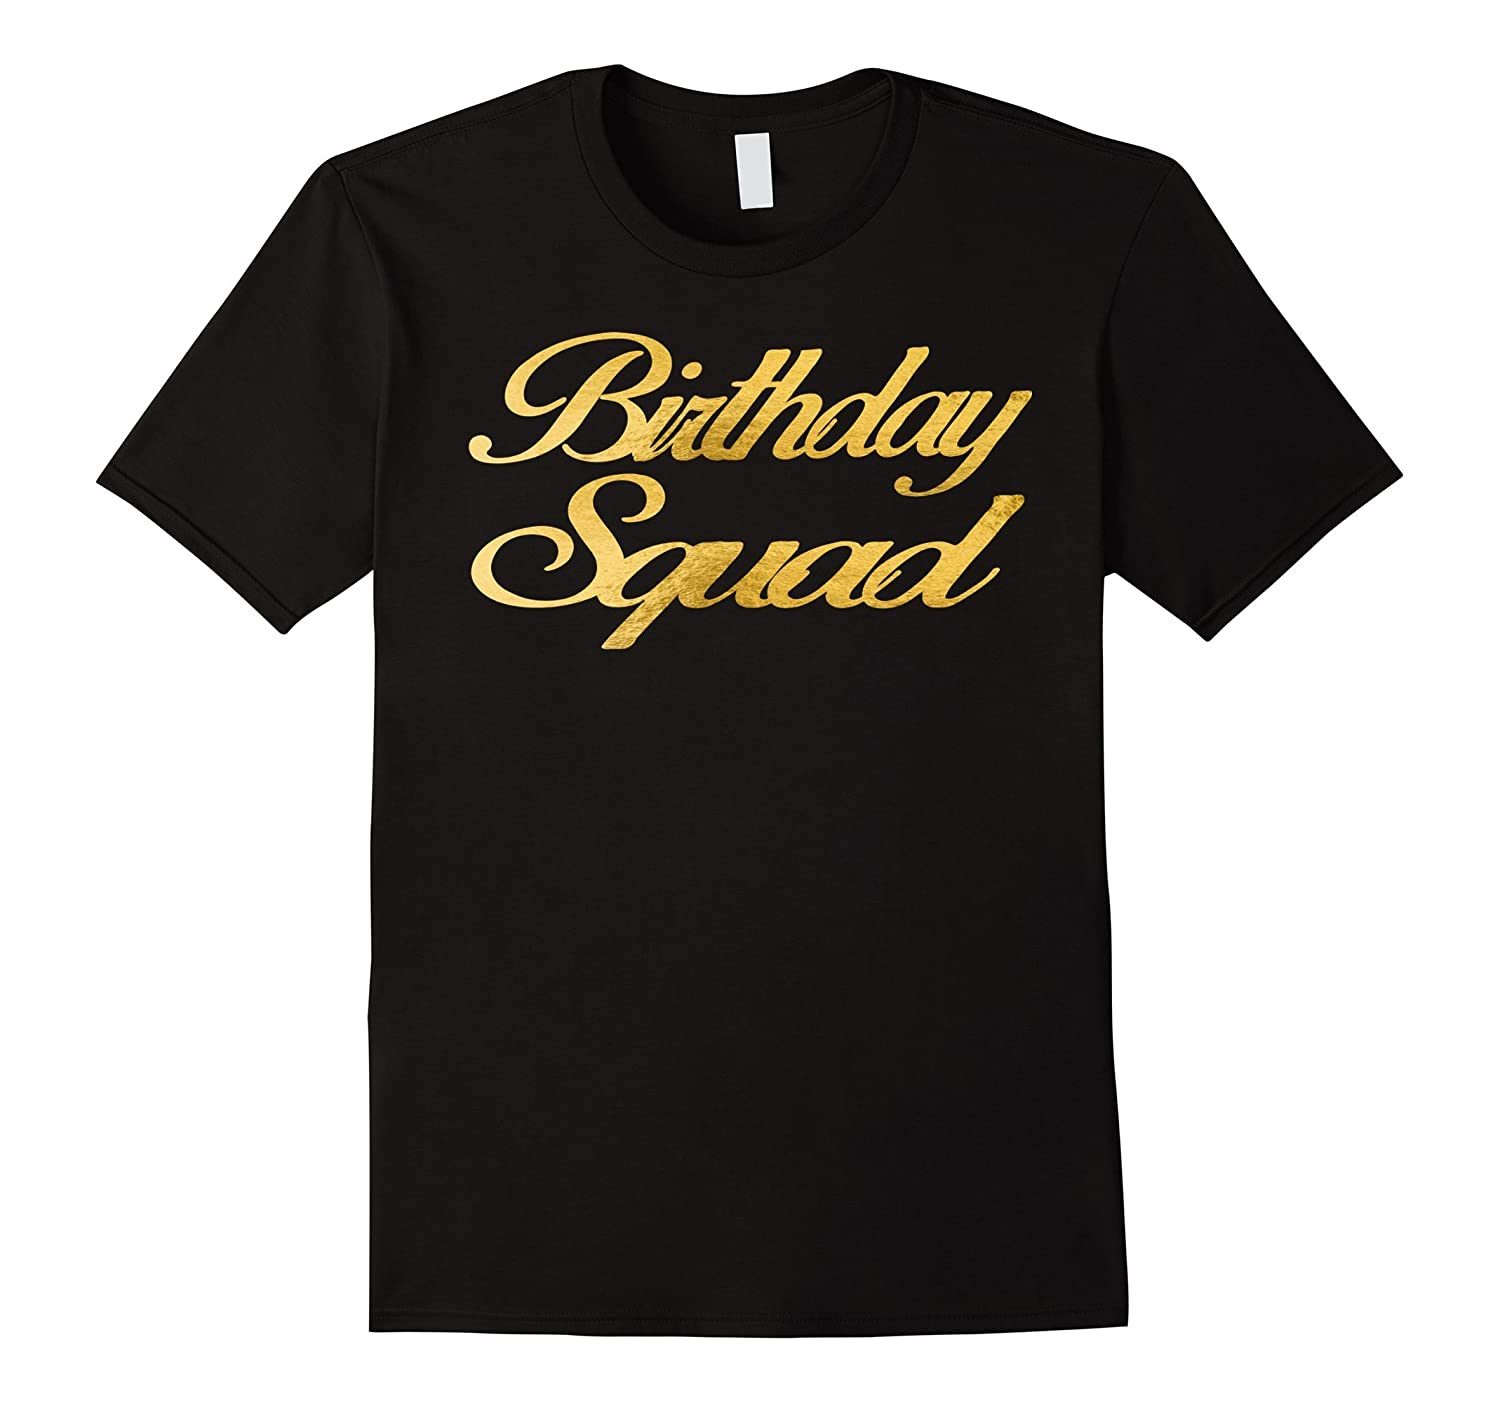 Birthday squad t shirt gold design anz anztshirt for Bucket squad gold shirt